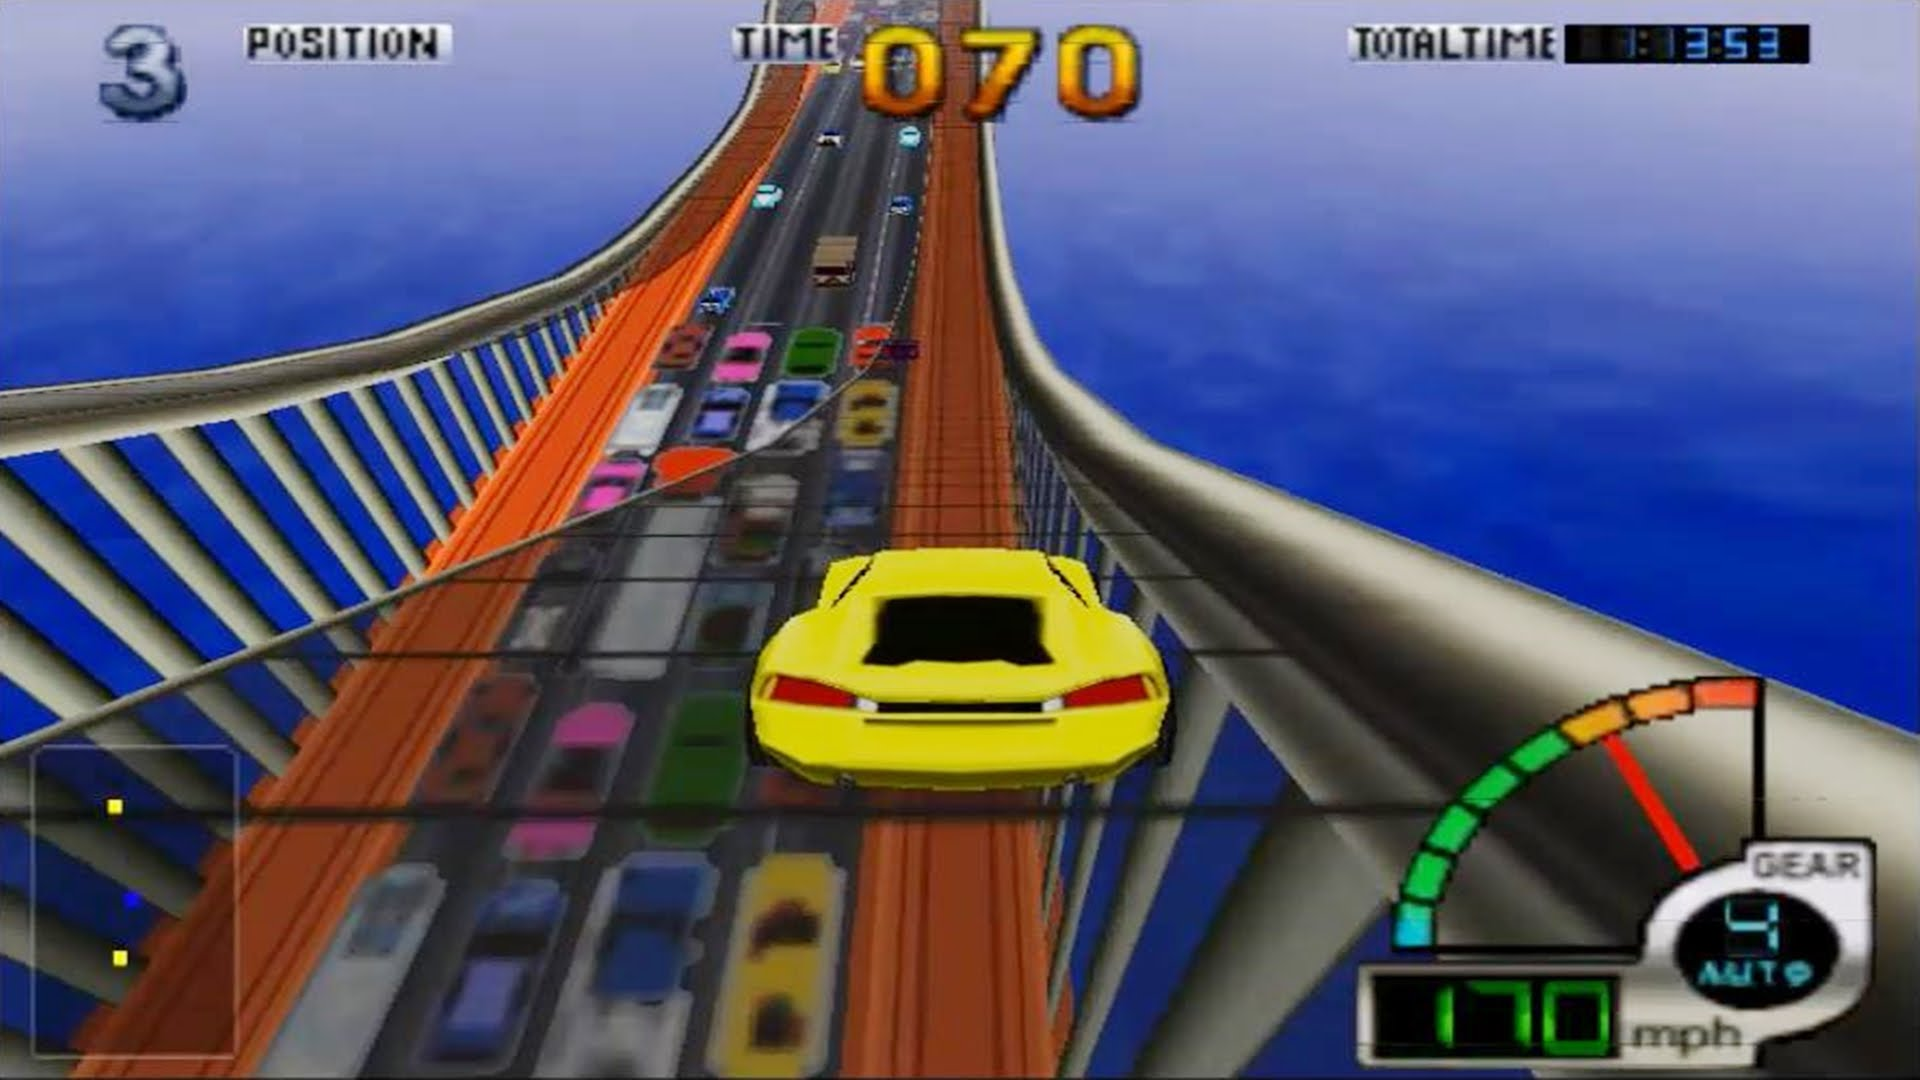 To be fair, this is the quickest way to get across the bridge at rush hour.